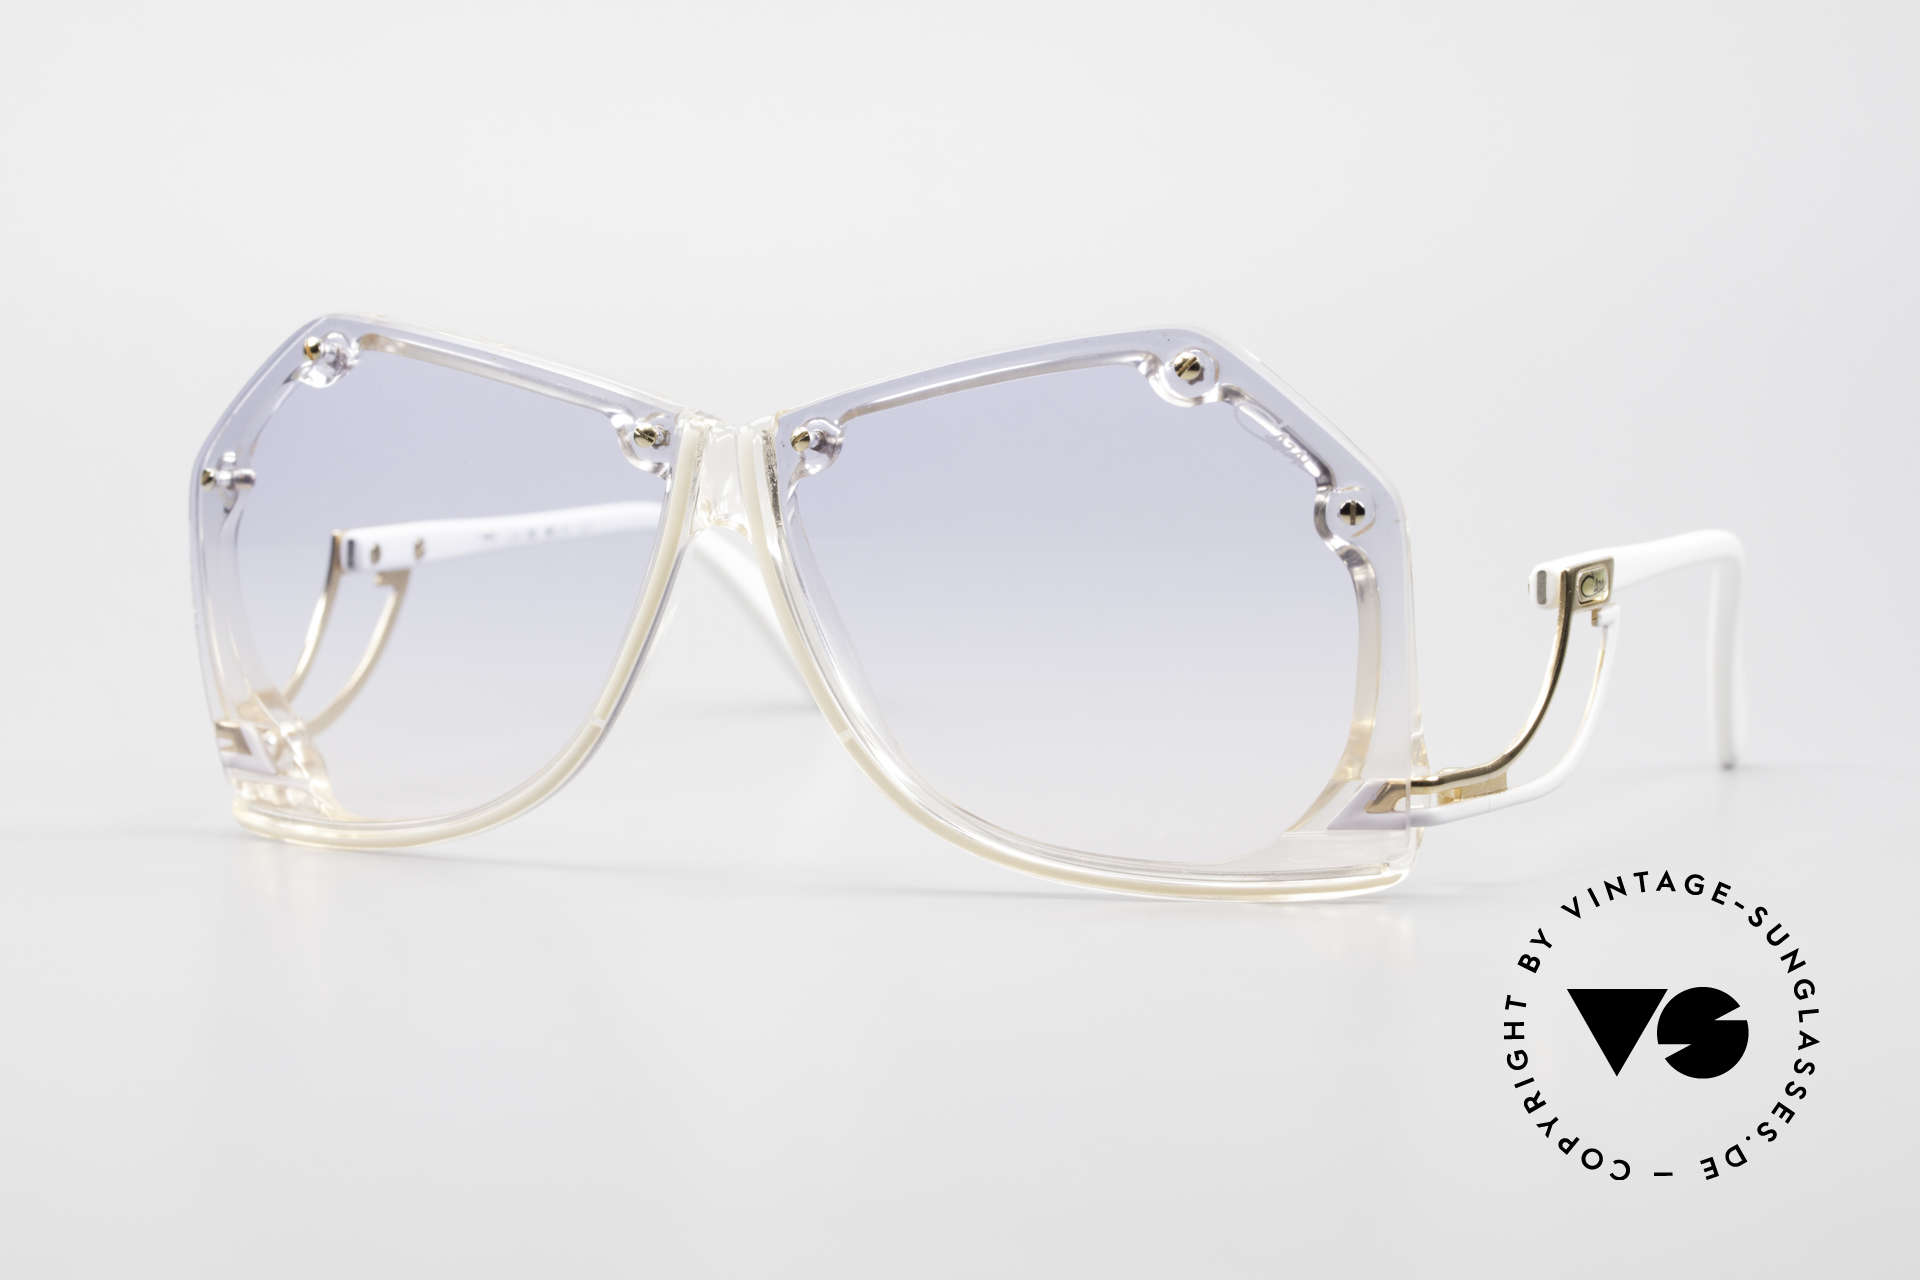 Cazal 860 The Most Beautiful 80's Cazal, vintage Cazal model 860, Col 192, 66/11, 135, Made for Women